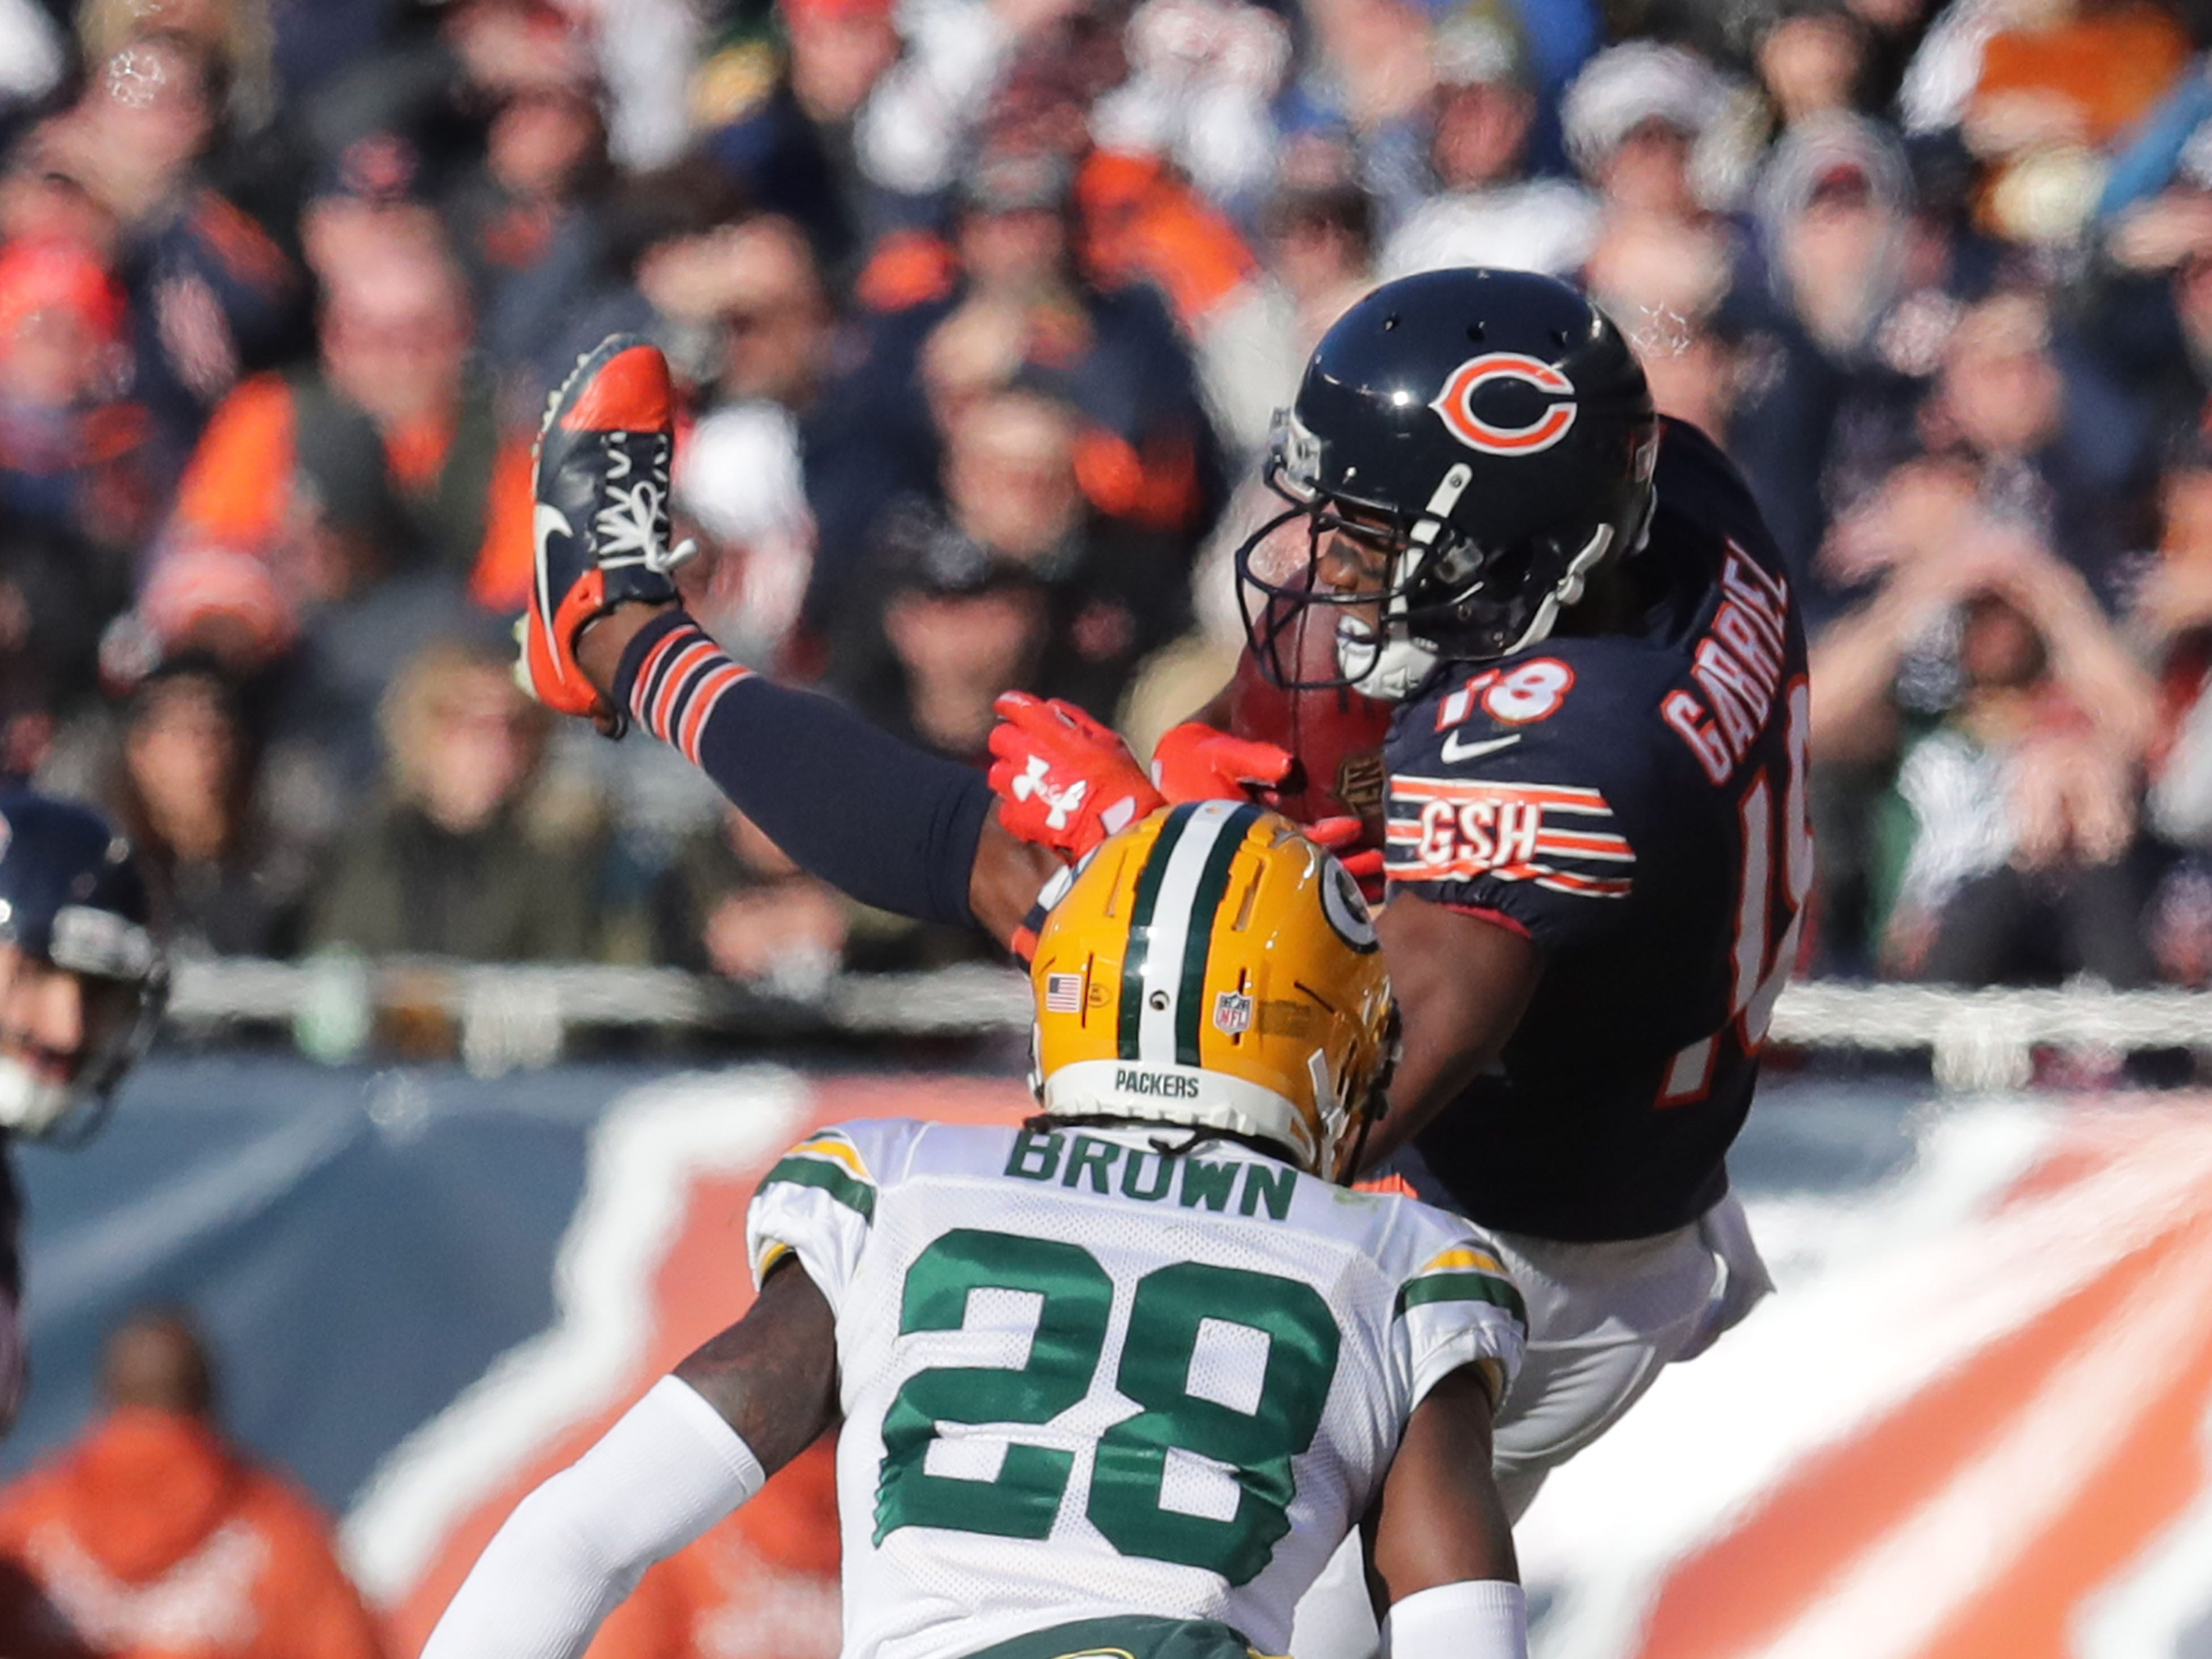 Chicago Bears' Taylor Gabriel catches a pass over Green Bay Packers' Tony Brown during the 2nd half of the Green Bay Packers 24-17 loss to the Chicago Bears at Soldier Field Sunday, Dec. 16, 2018, in Chicago. Photo by Mike De Sisti / The Milwaukee Journal Sentinel